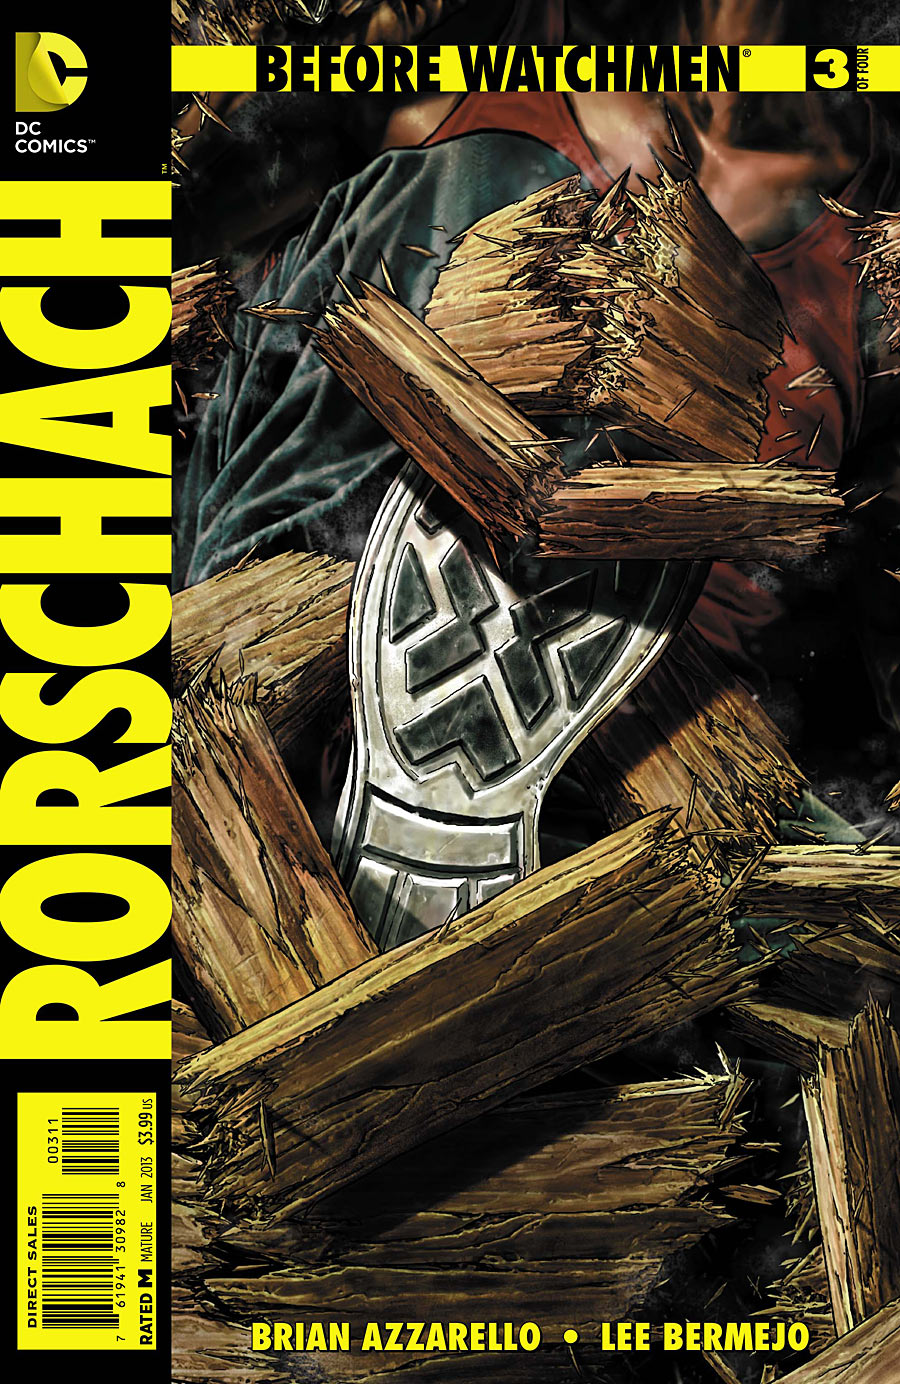 prv14545 cov Before Watchmen: Rorschach #3 Review